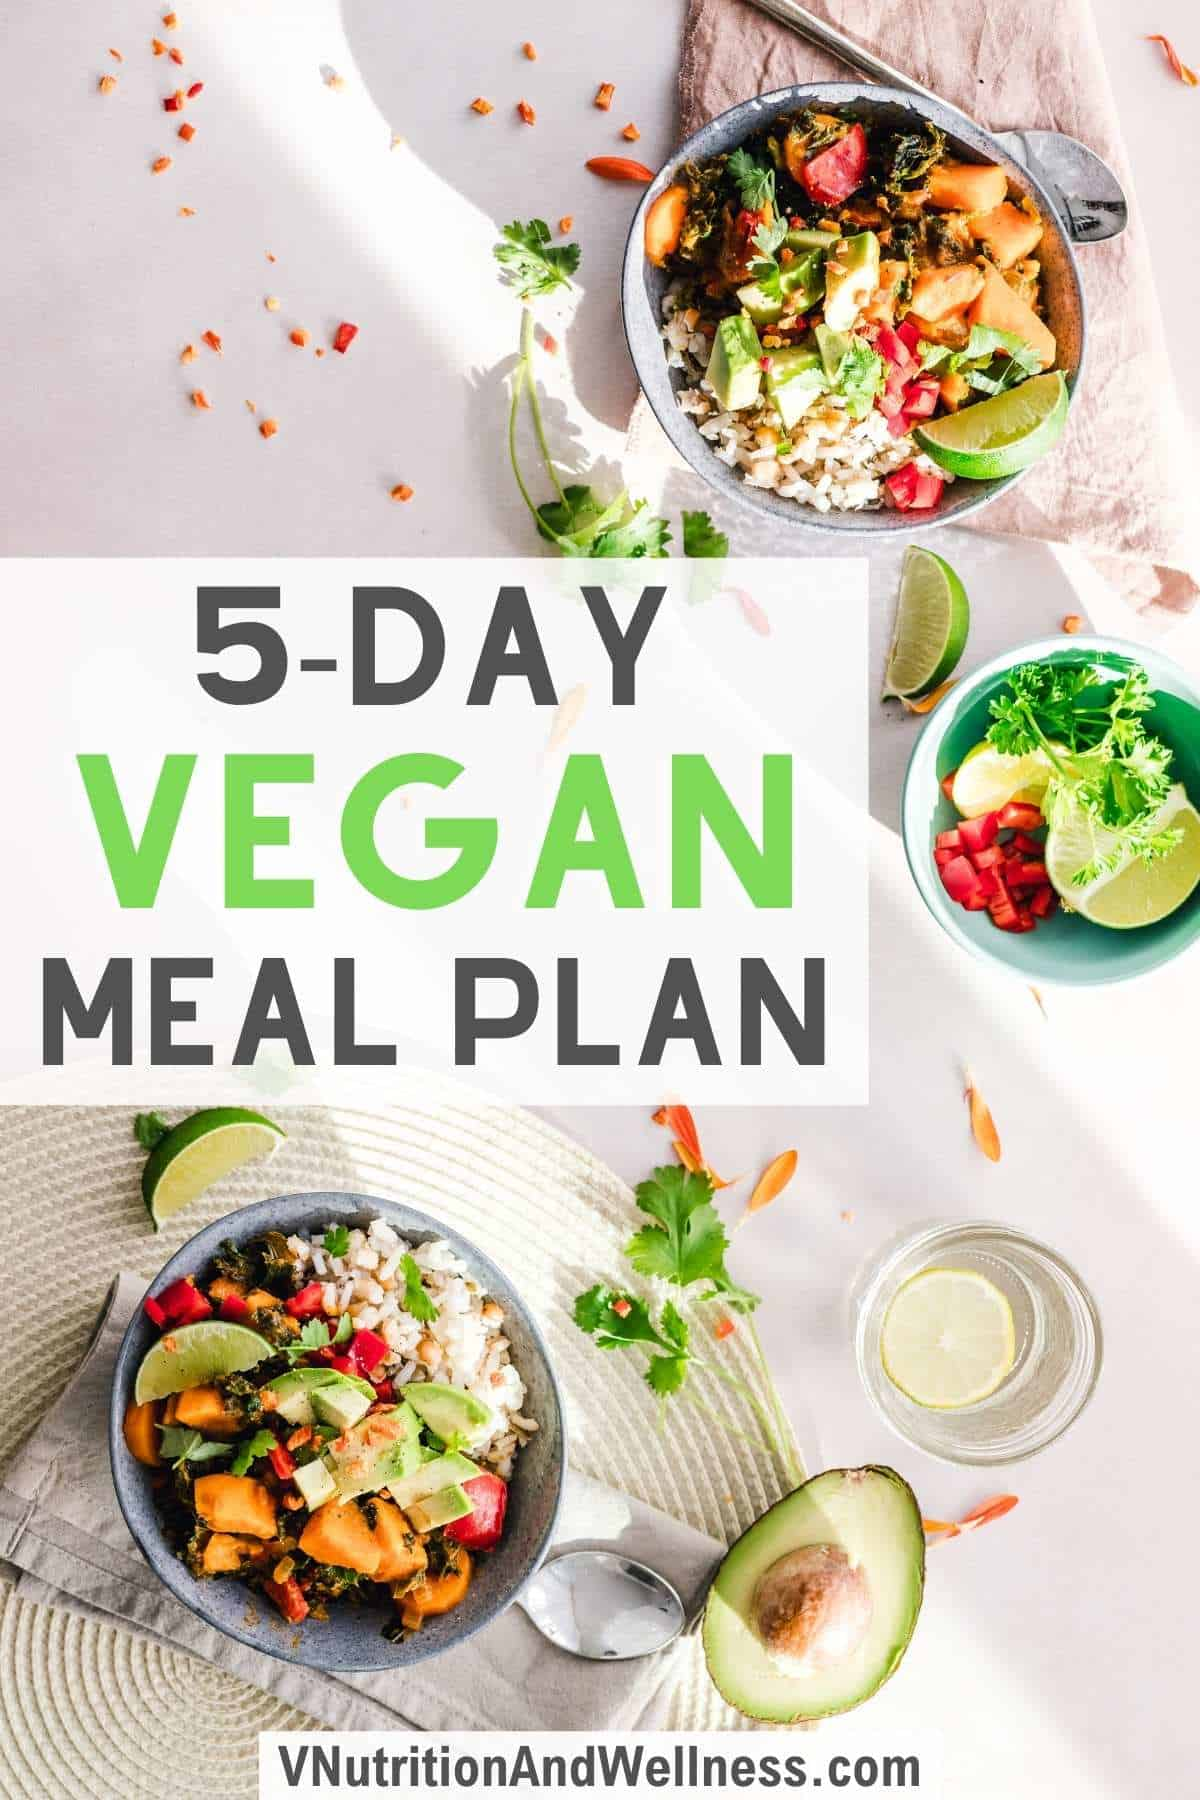 5 day vegan meal plan image with bowls of food